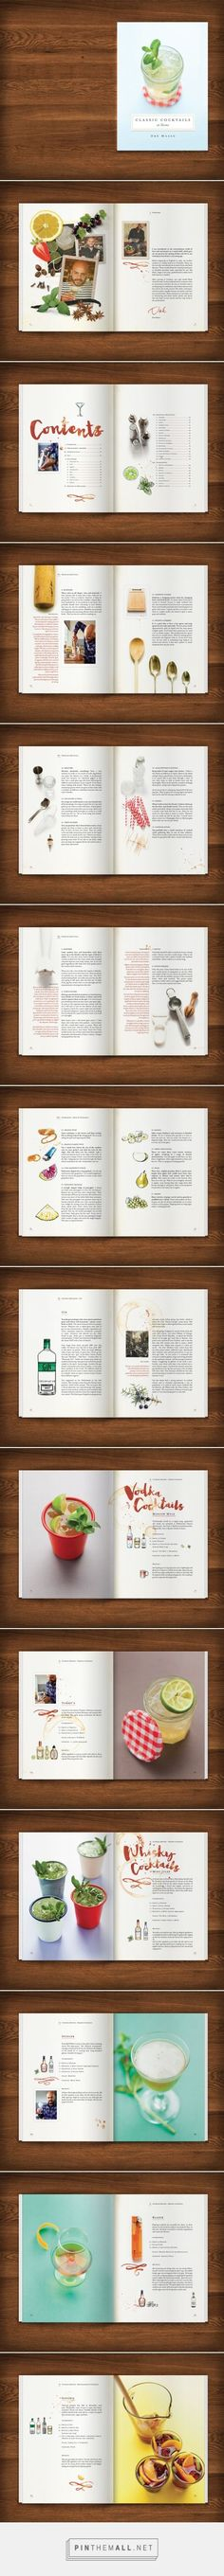 Designed by www.artistictype.co.uk - Cocktail Recipe Book design for Dre Masso. The brief was to design a recipe book for the home bartender that looked fun, relaxed and well used.  All of the ingredients from brand neutral premium spirits to fruit garnishes were hand illustrated and whilst there was a strict grid used in the page layout design, each spread had its own visual identity.  Services supplied: graphic design, recipe book design, page layouts, typography and illustration.: